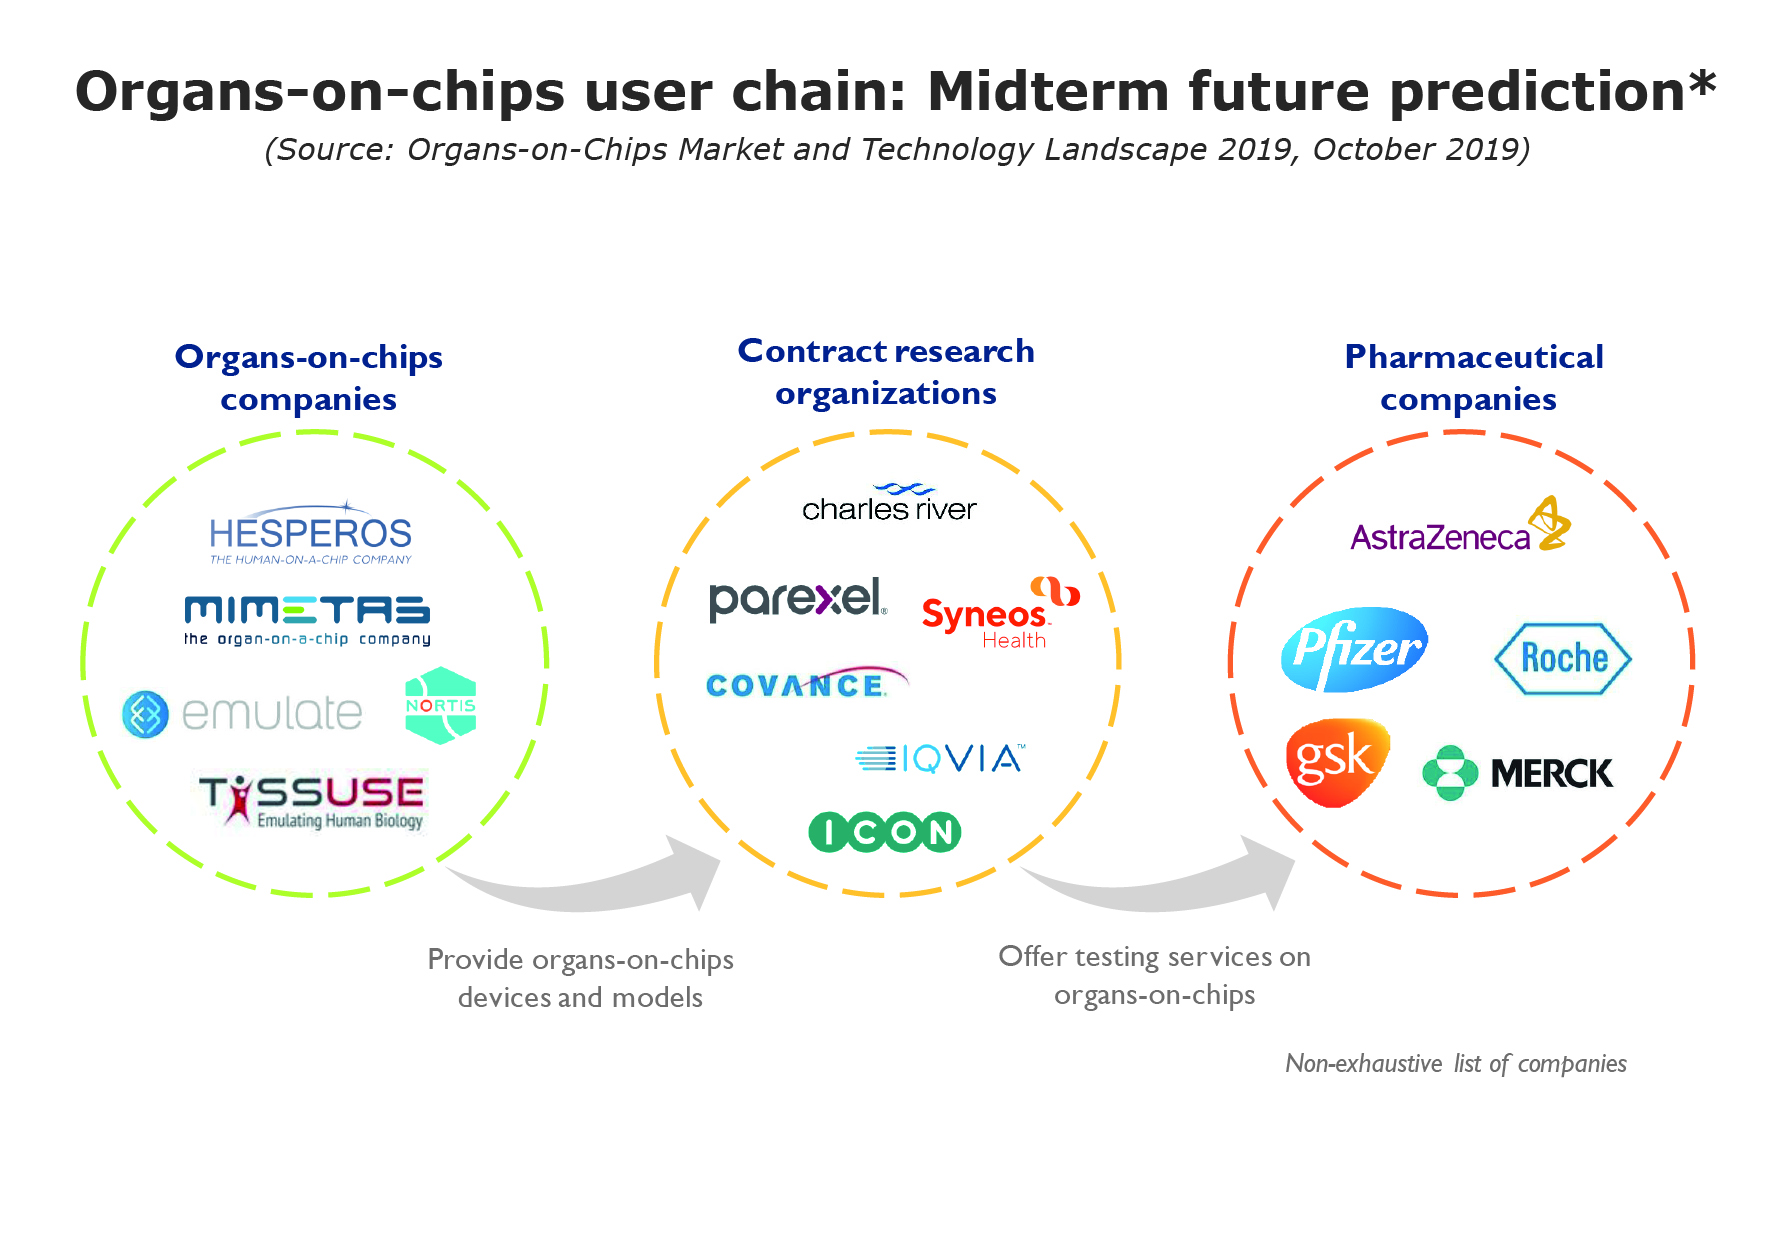 Organs-on-chips user chain: Midterm future prediction* 1 ORGAN-ON-CHIPS USER CHAIN: MID-TERM FUTURE PREDICTION